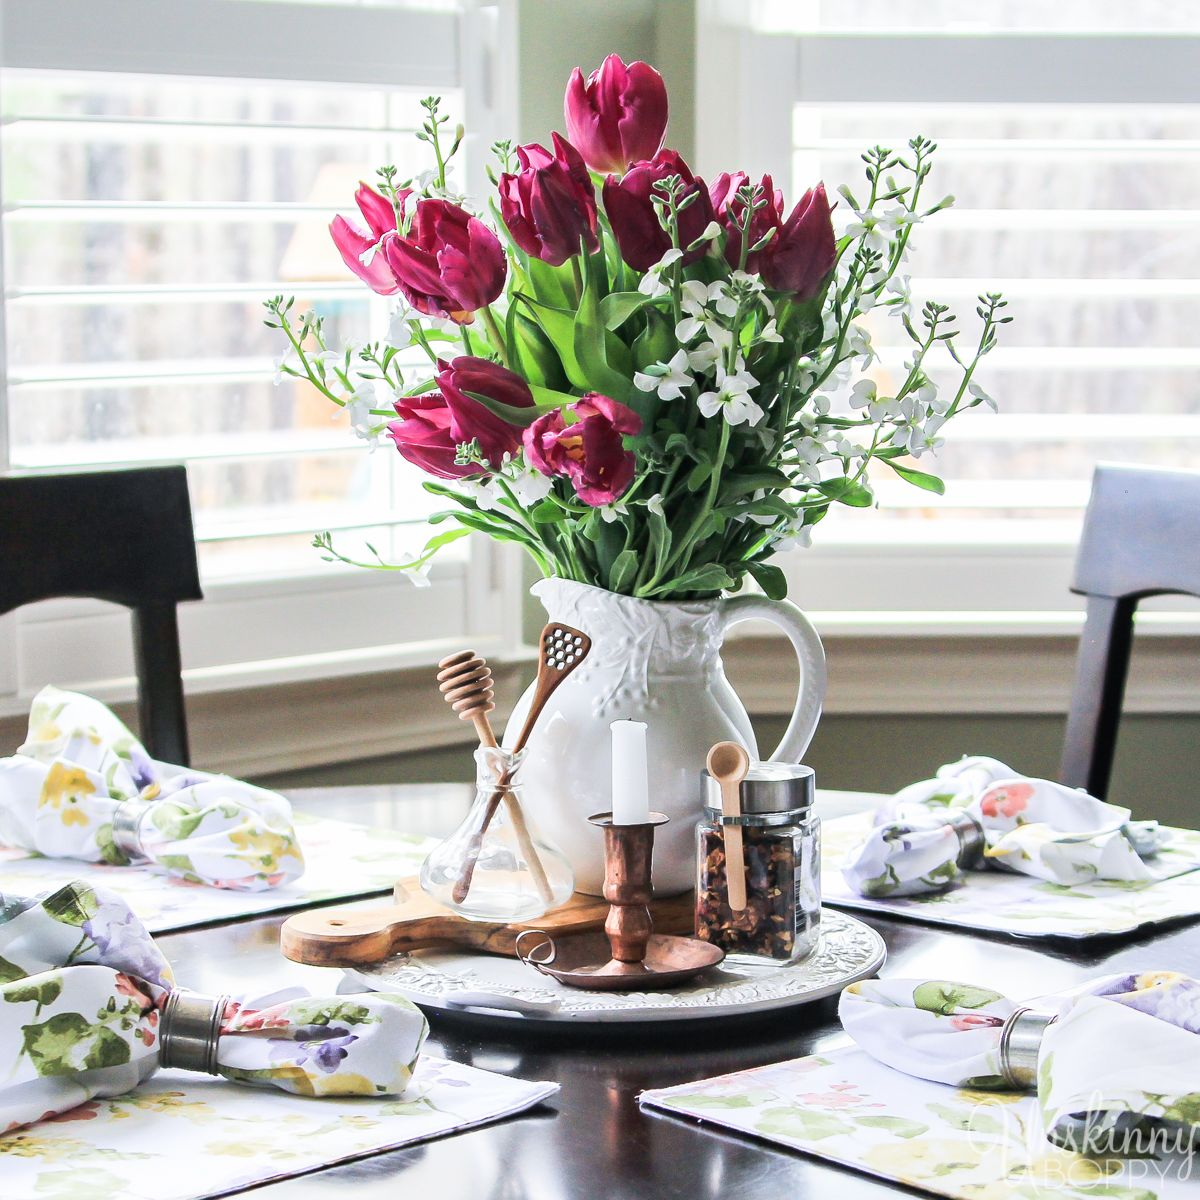 Kitchen Table Decor Ideas: Cynthia Rowley Square Floral Placemats On A Breakfast